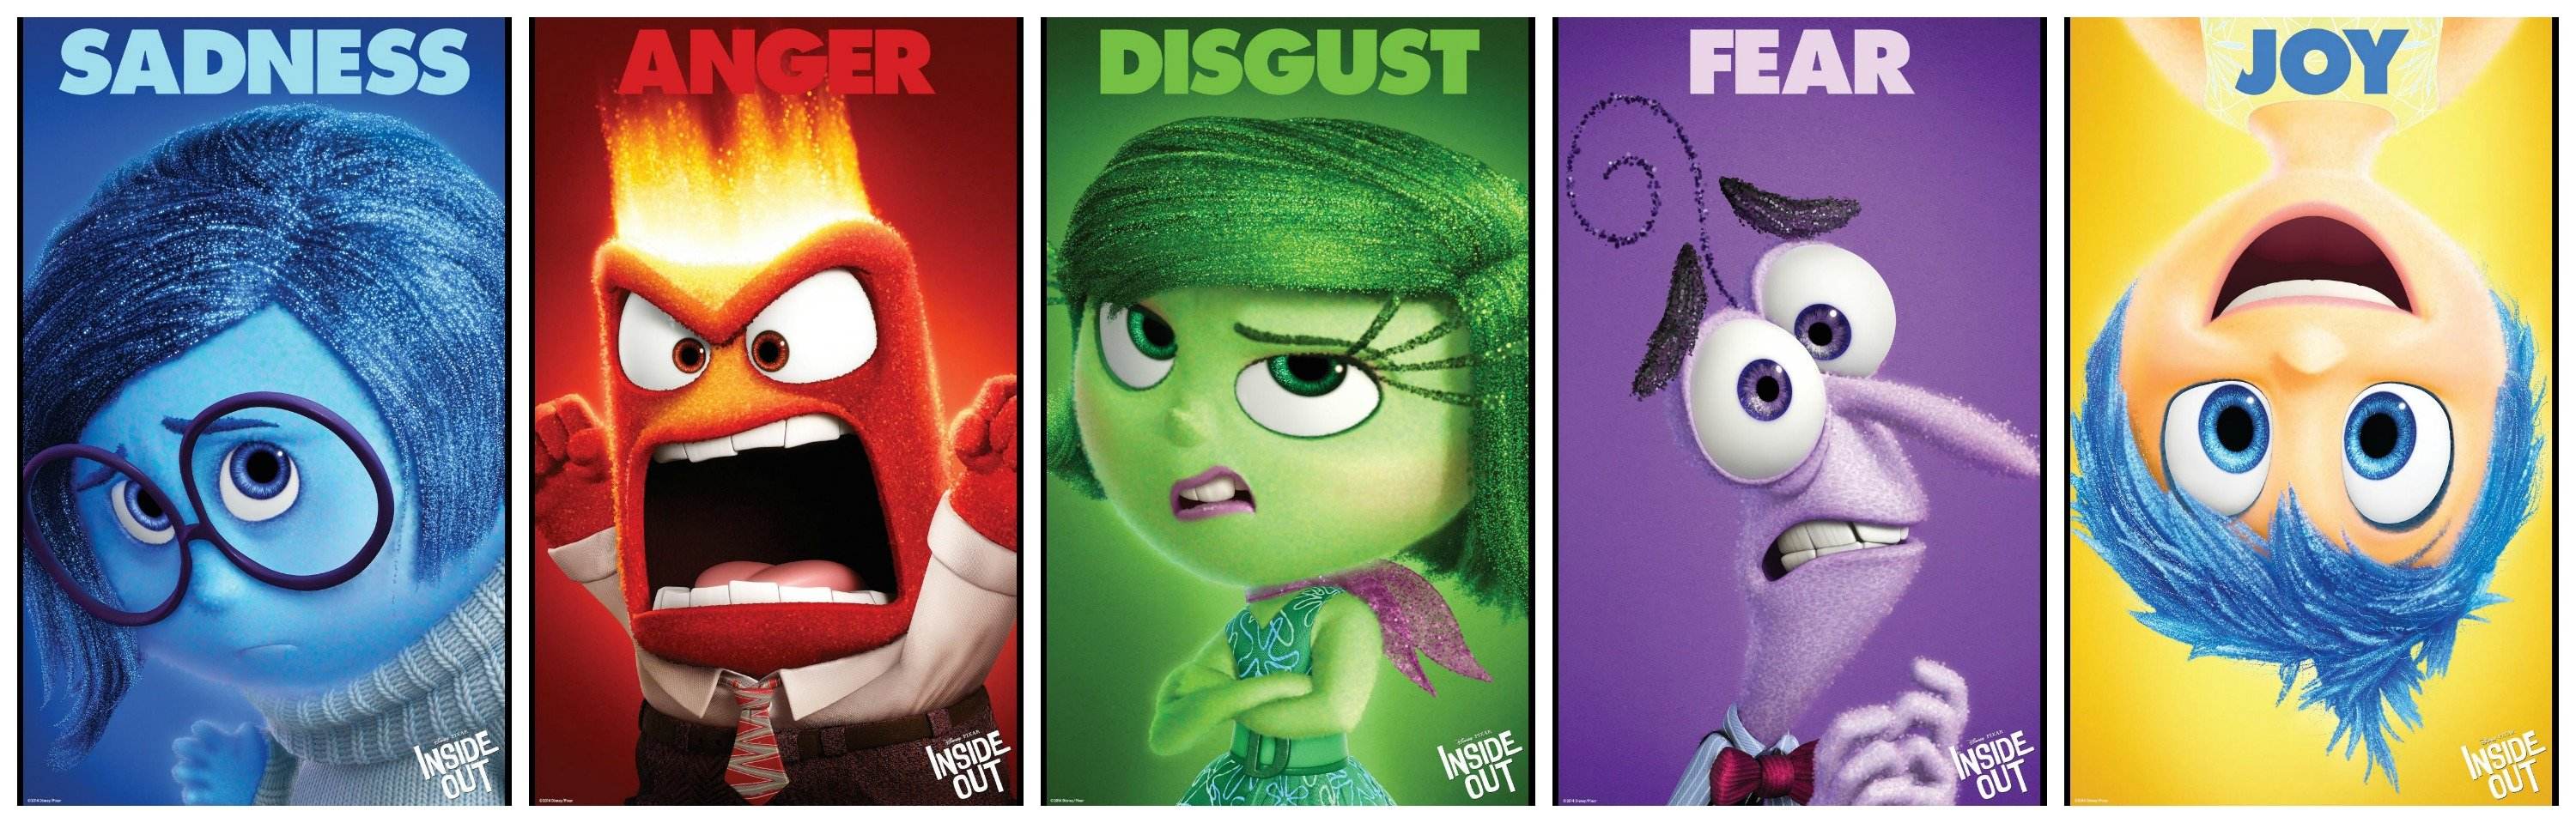 Inside Out Disney Animation Humor Funny Comedy Family